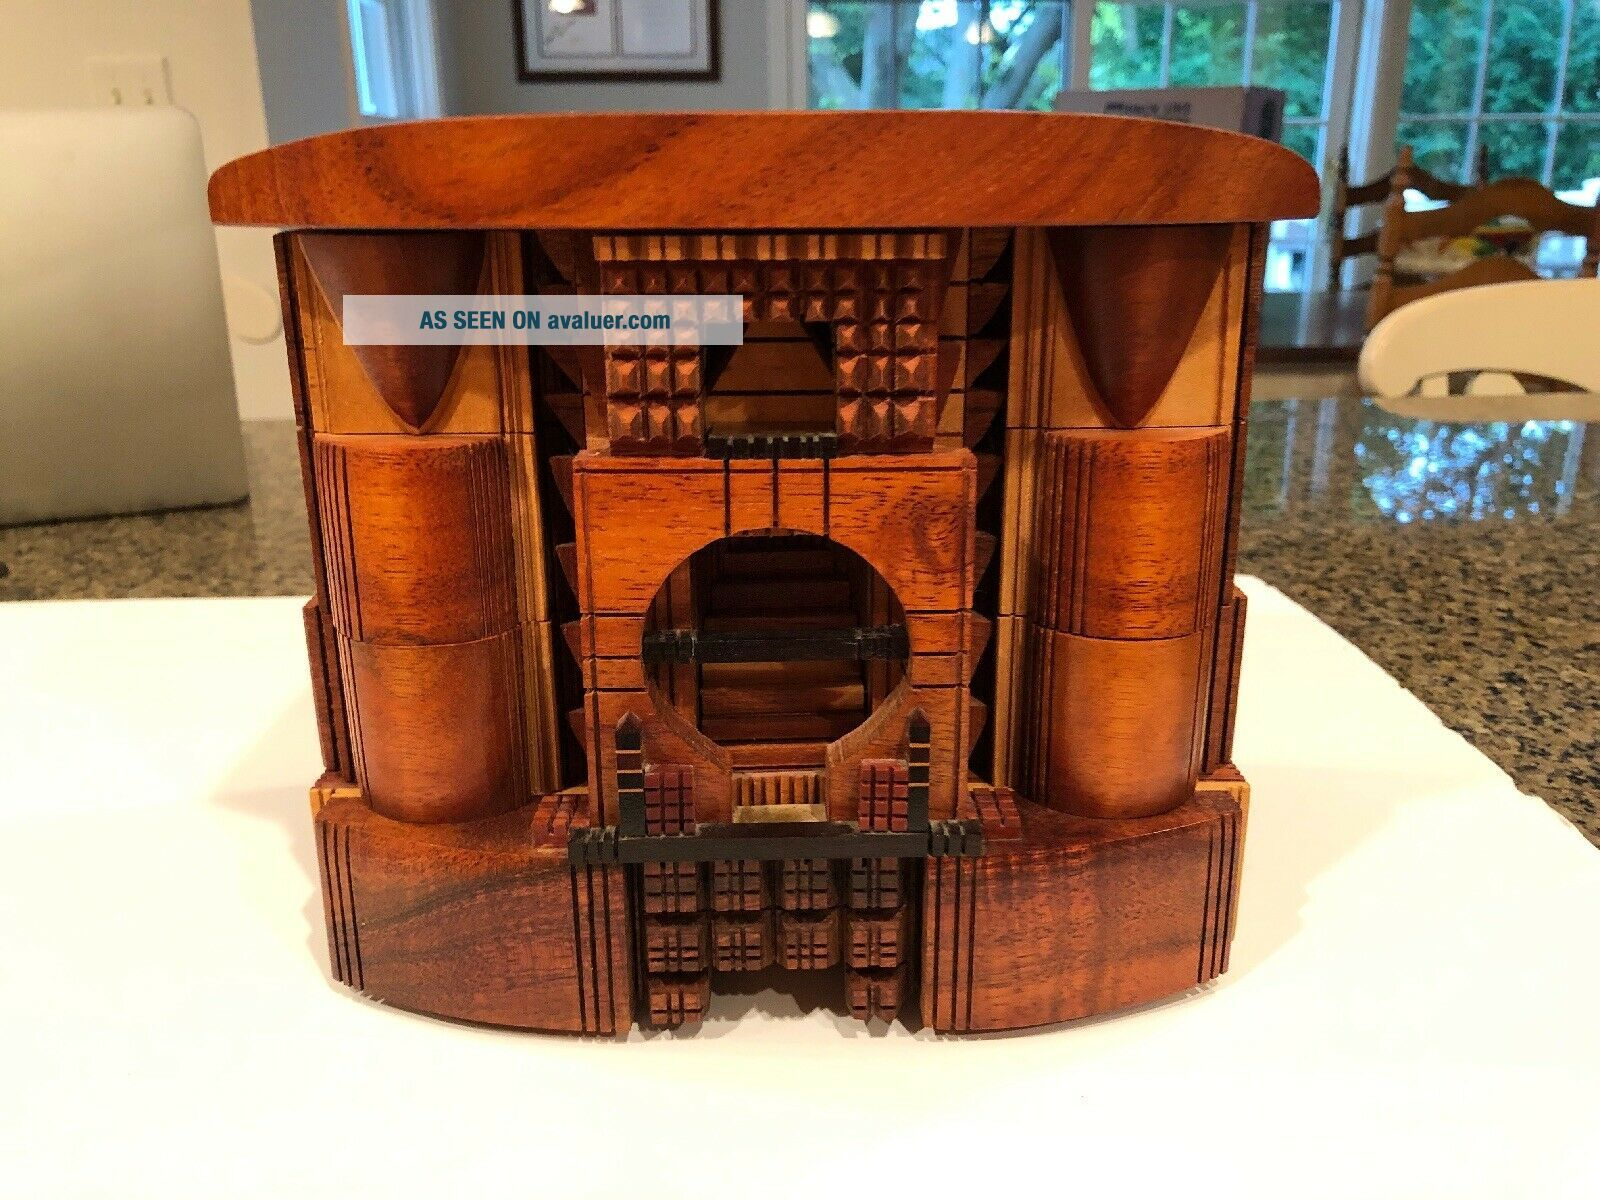 Po Shun Leong 1993 Hand Crafted Wood Jewelry Box Signed 1993